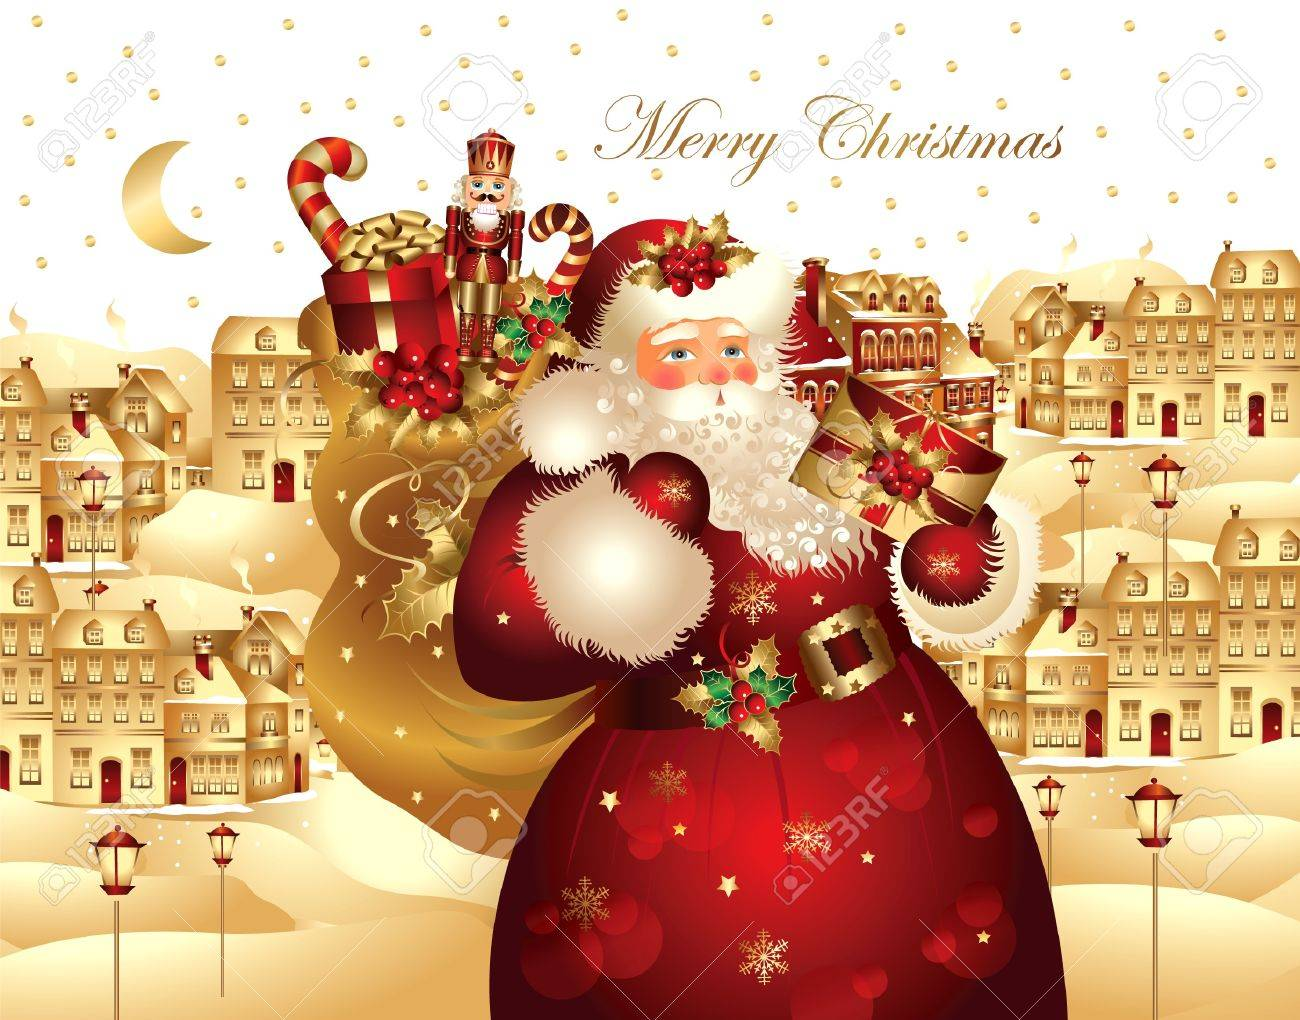 Christmas banner with Santa Claus Stock Vector - 9821516